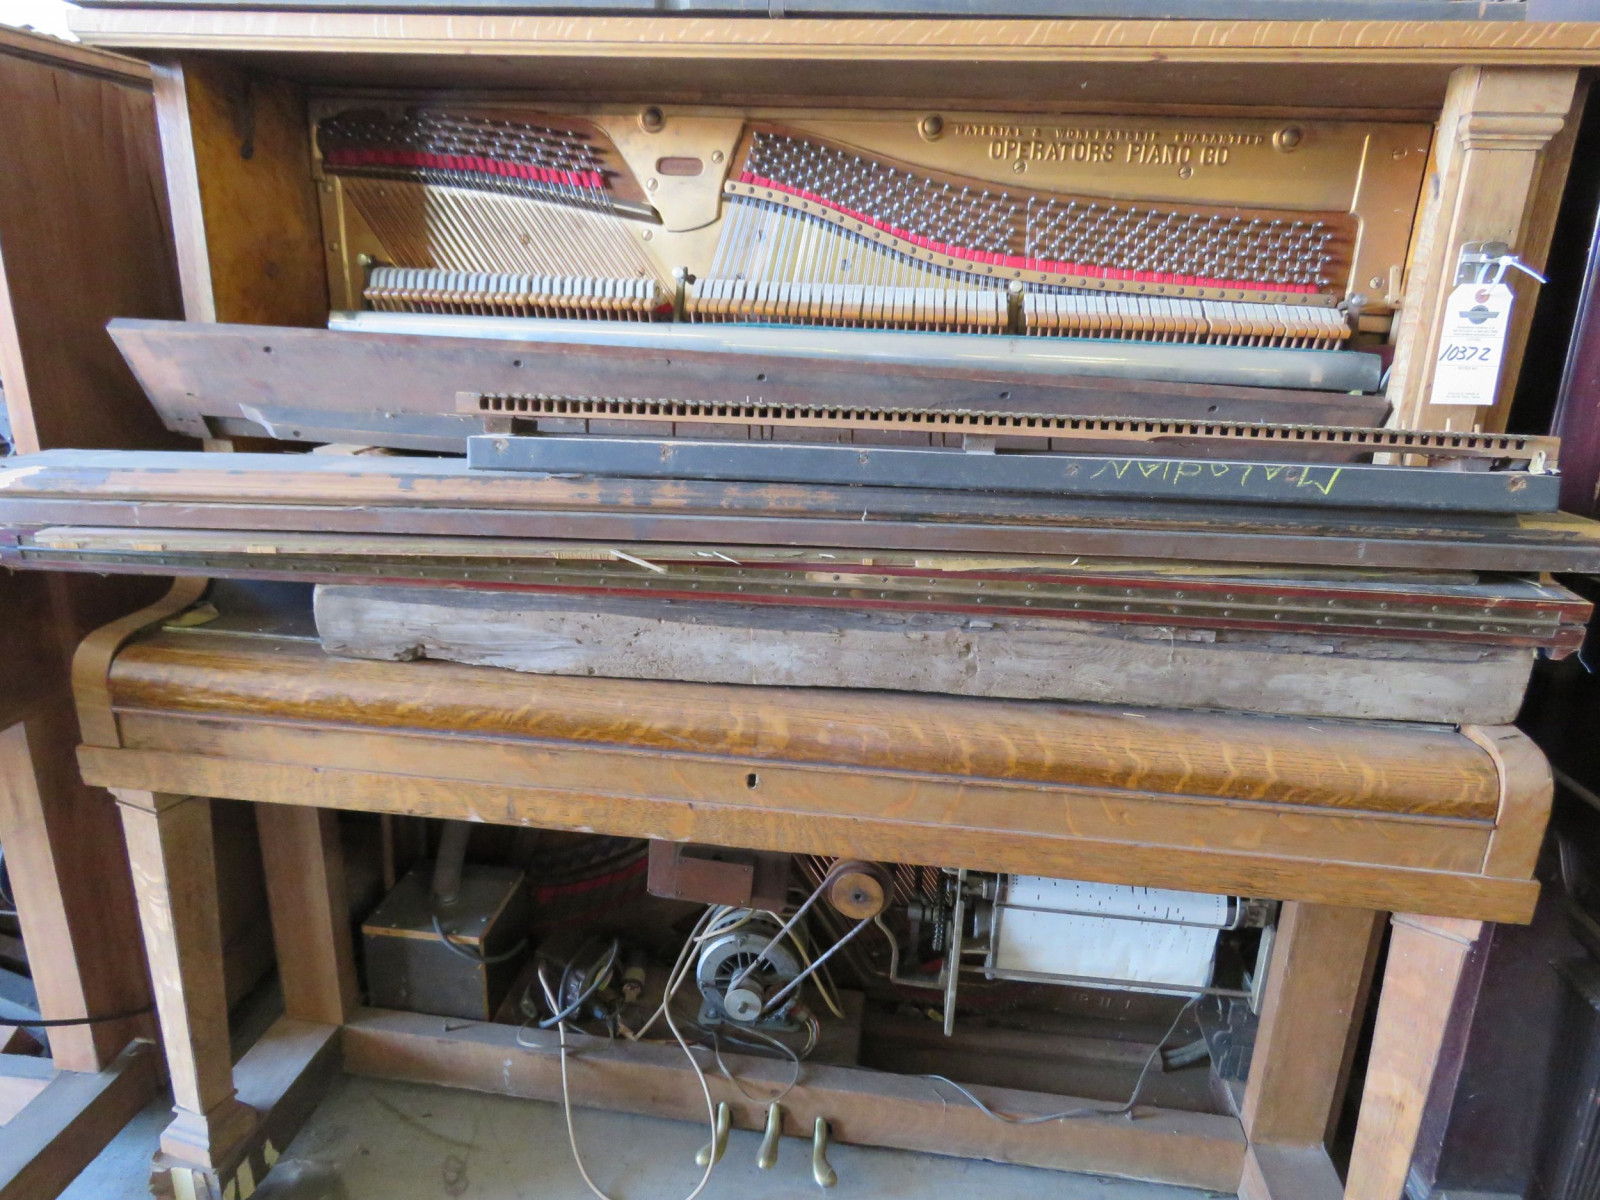 Operators Player Piano for Project or Parts - Image 1